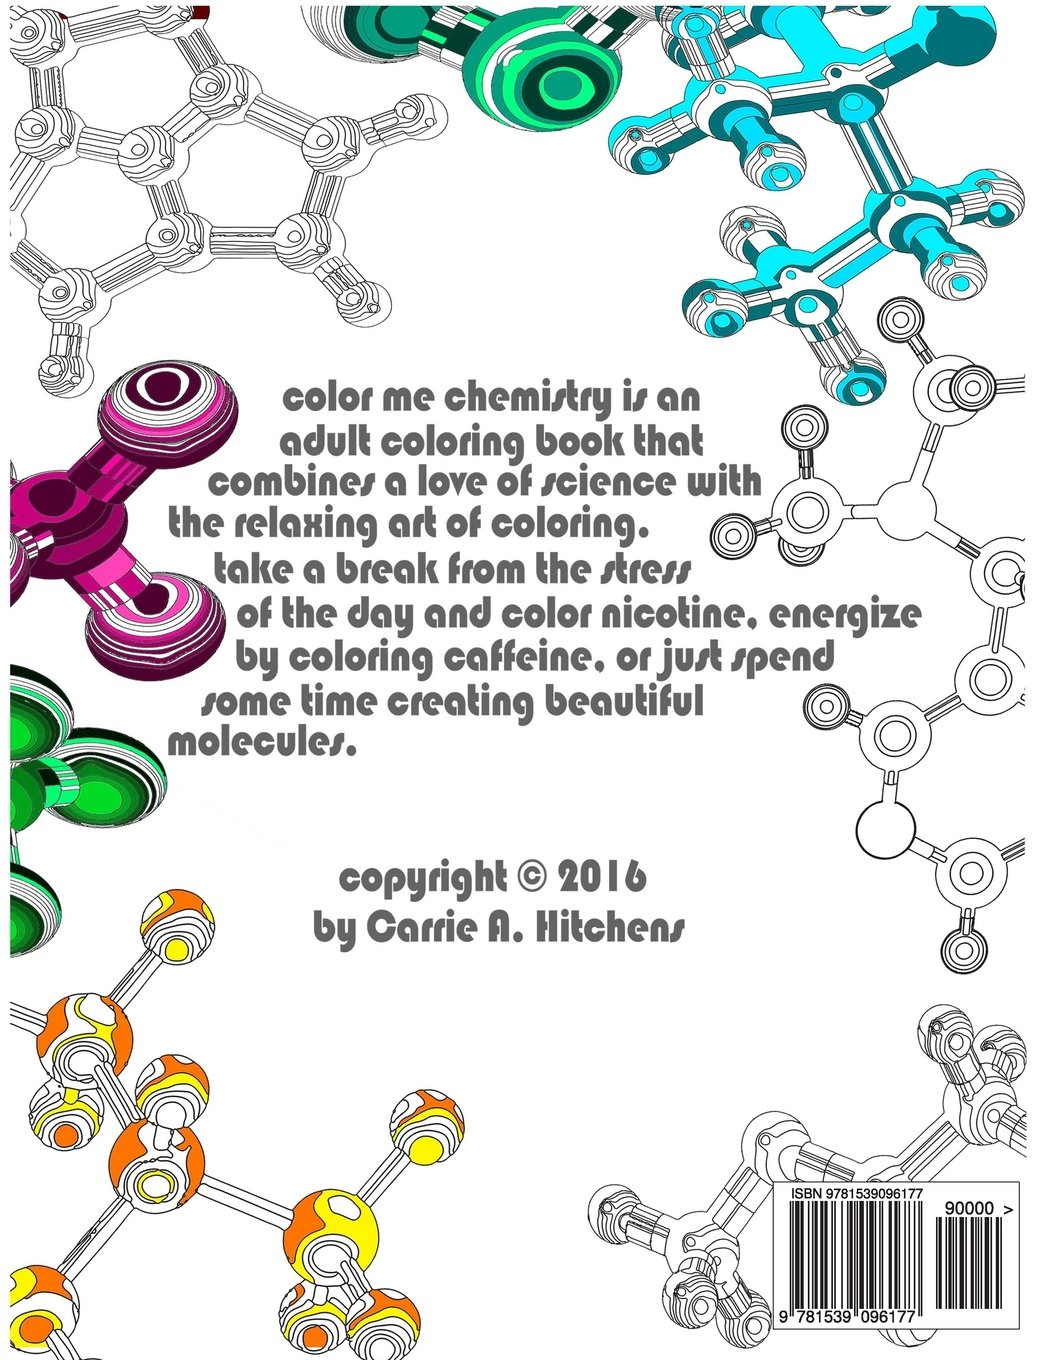 Amazon.com: Color Me Chemistry: A Molecular Coloring Book For Adults ...